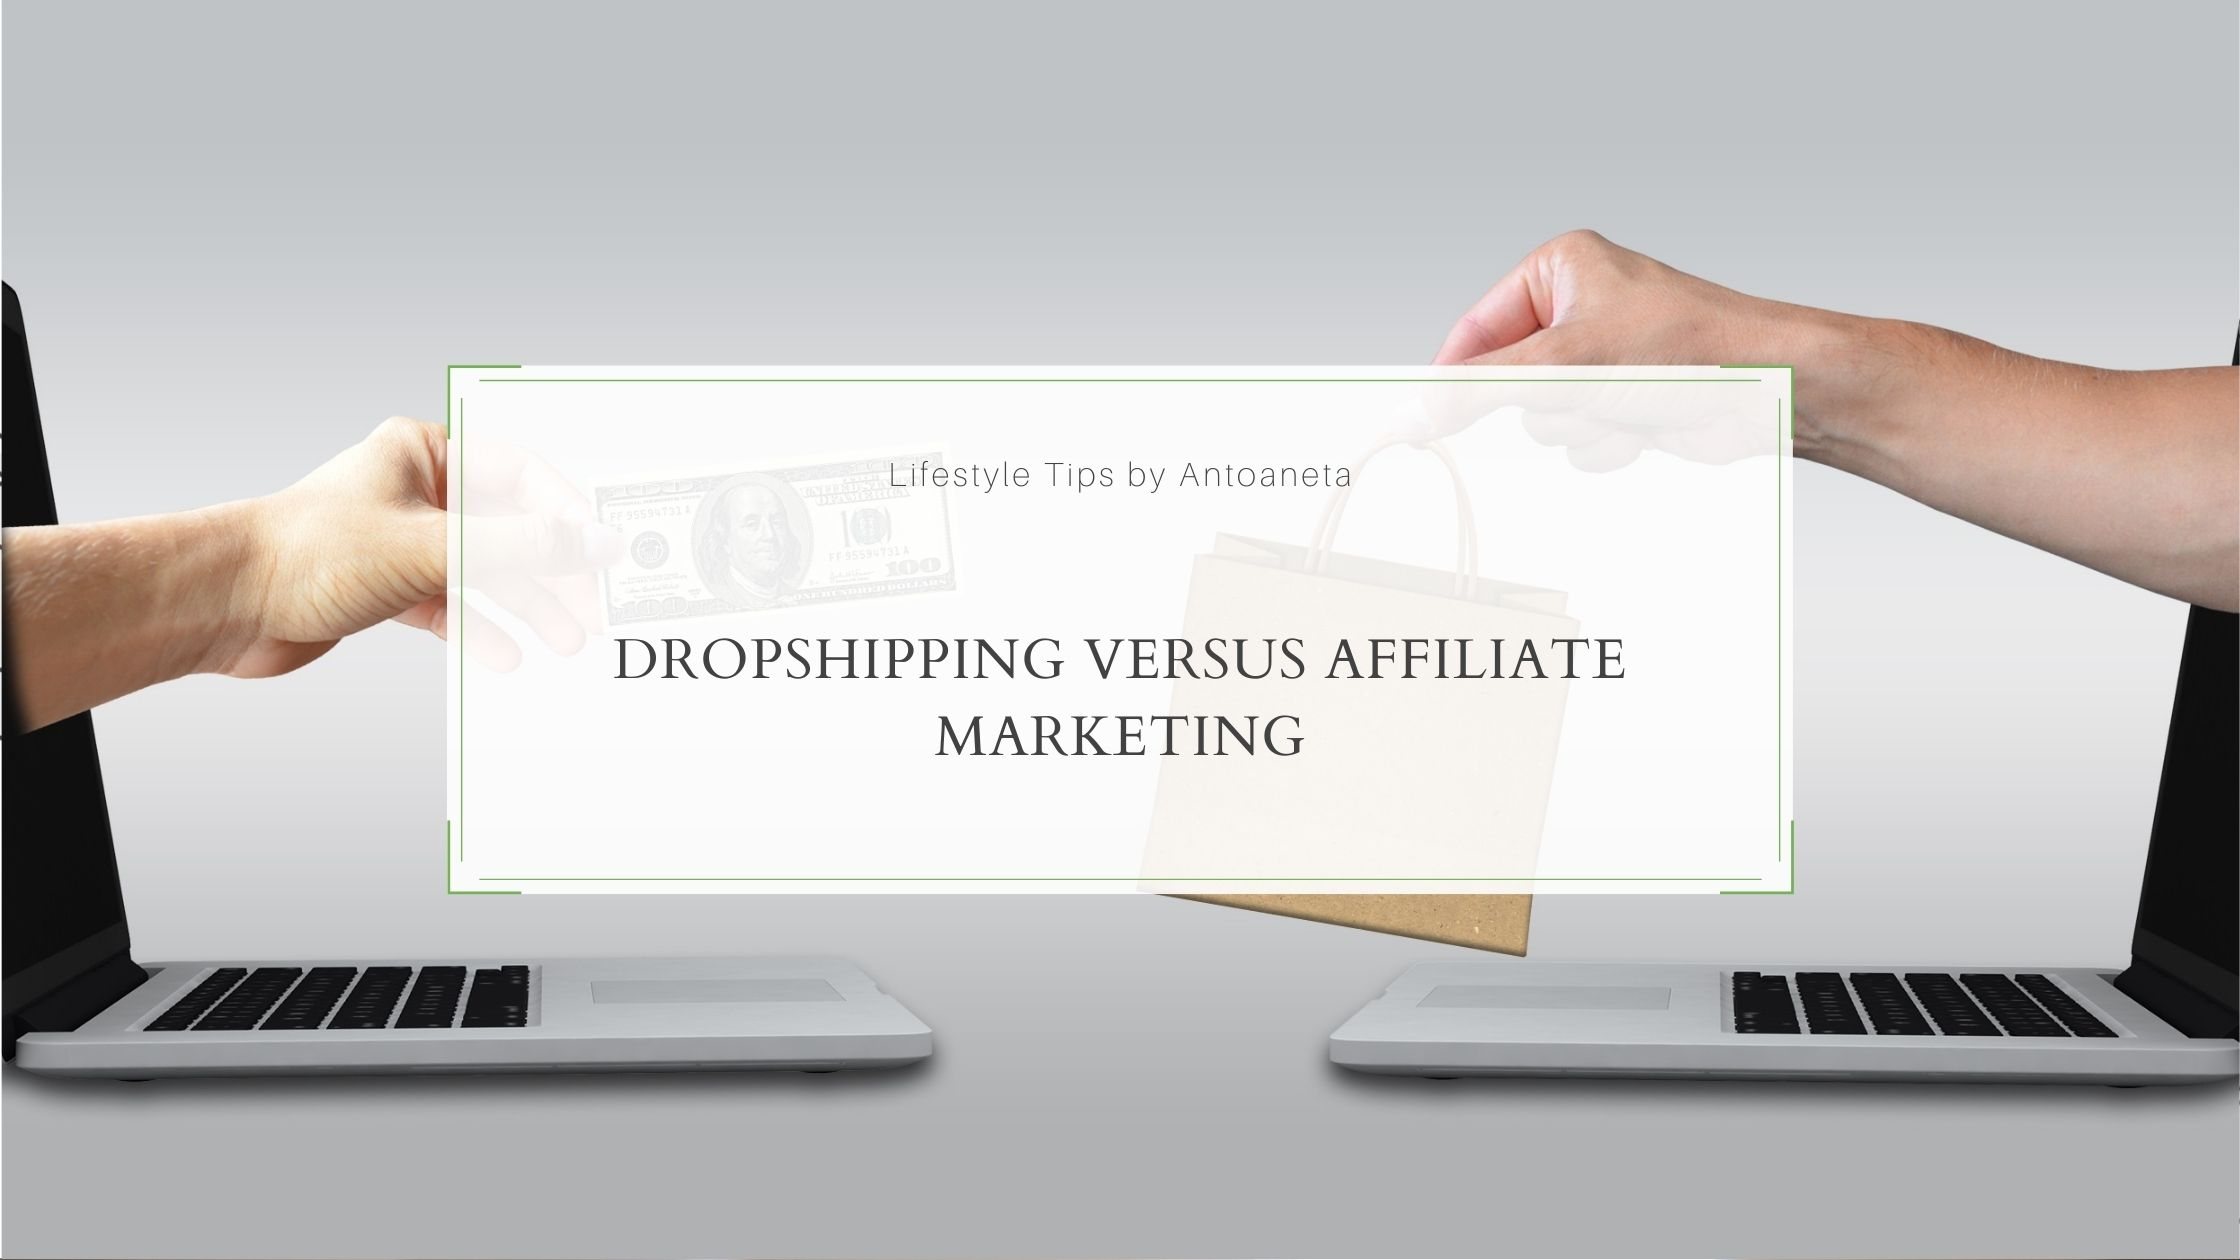 Dropshipping Versus Affiliate Marketing